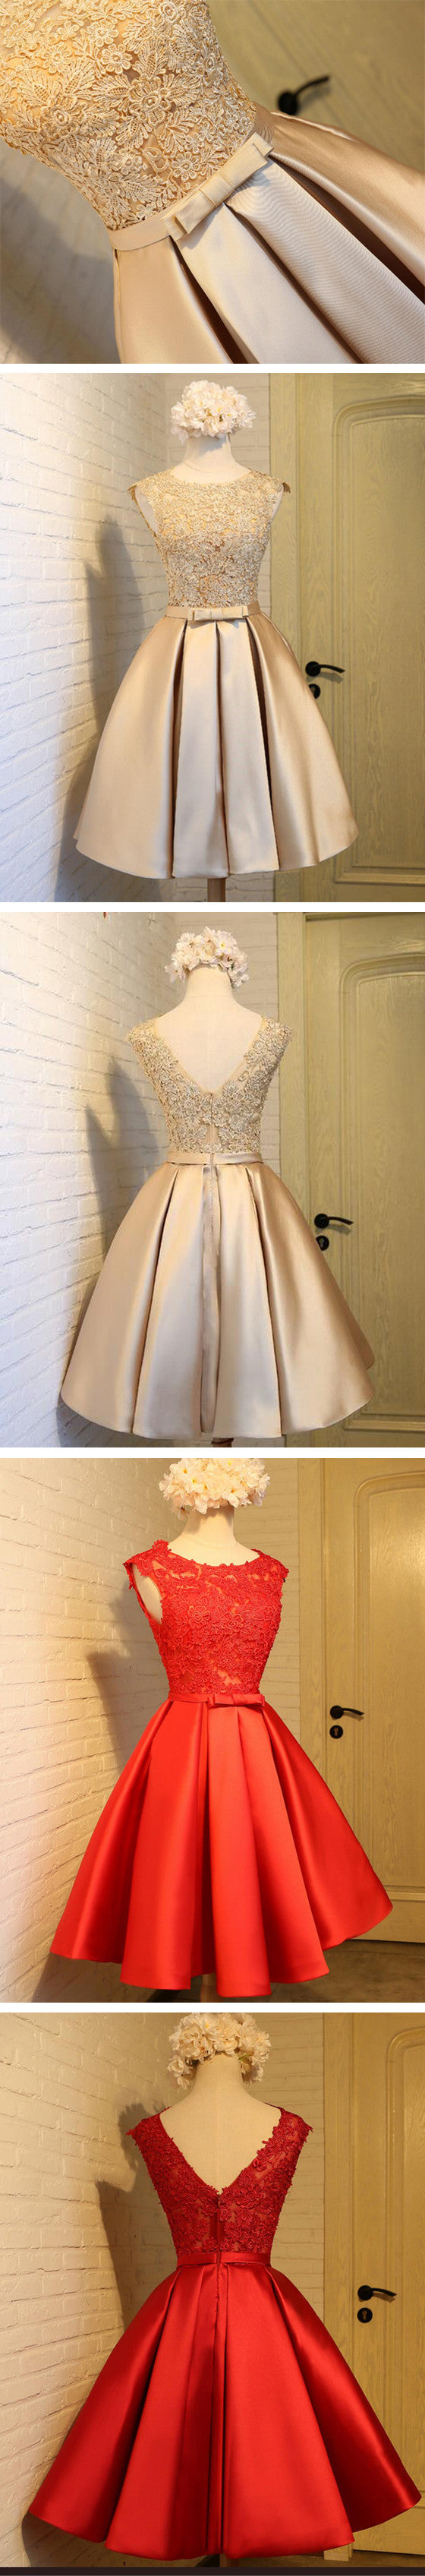 Vintage Sleeveless Appliques Satin Skirt V-back A-line Knee Length  For Teen Homecoming Prom Dress,BD0131